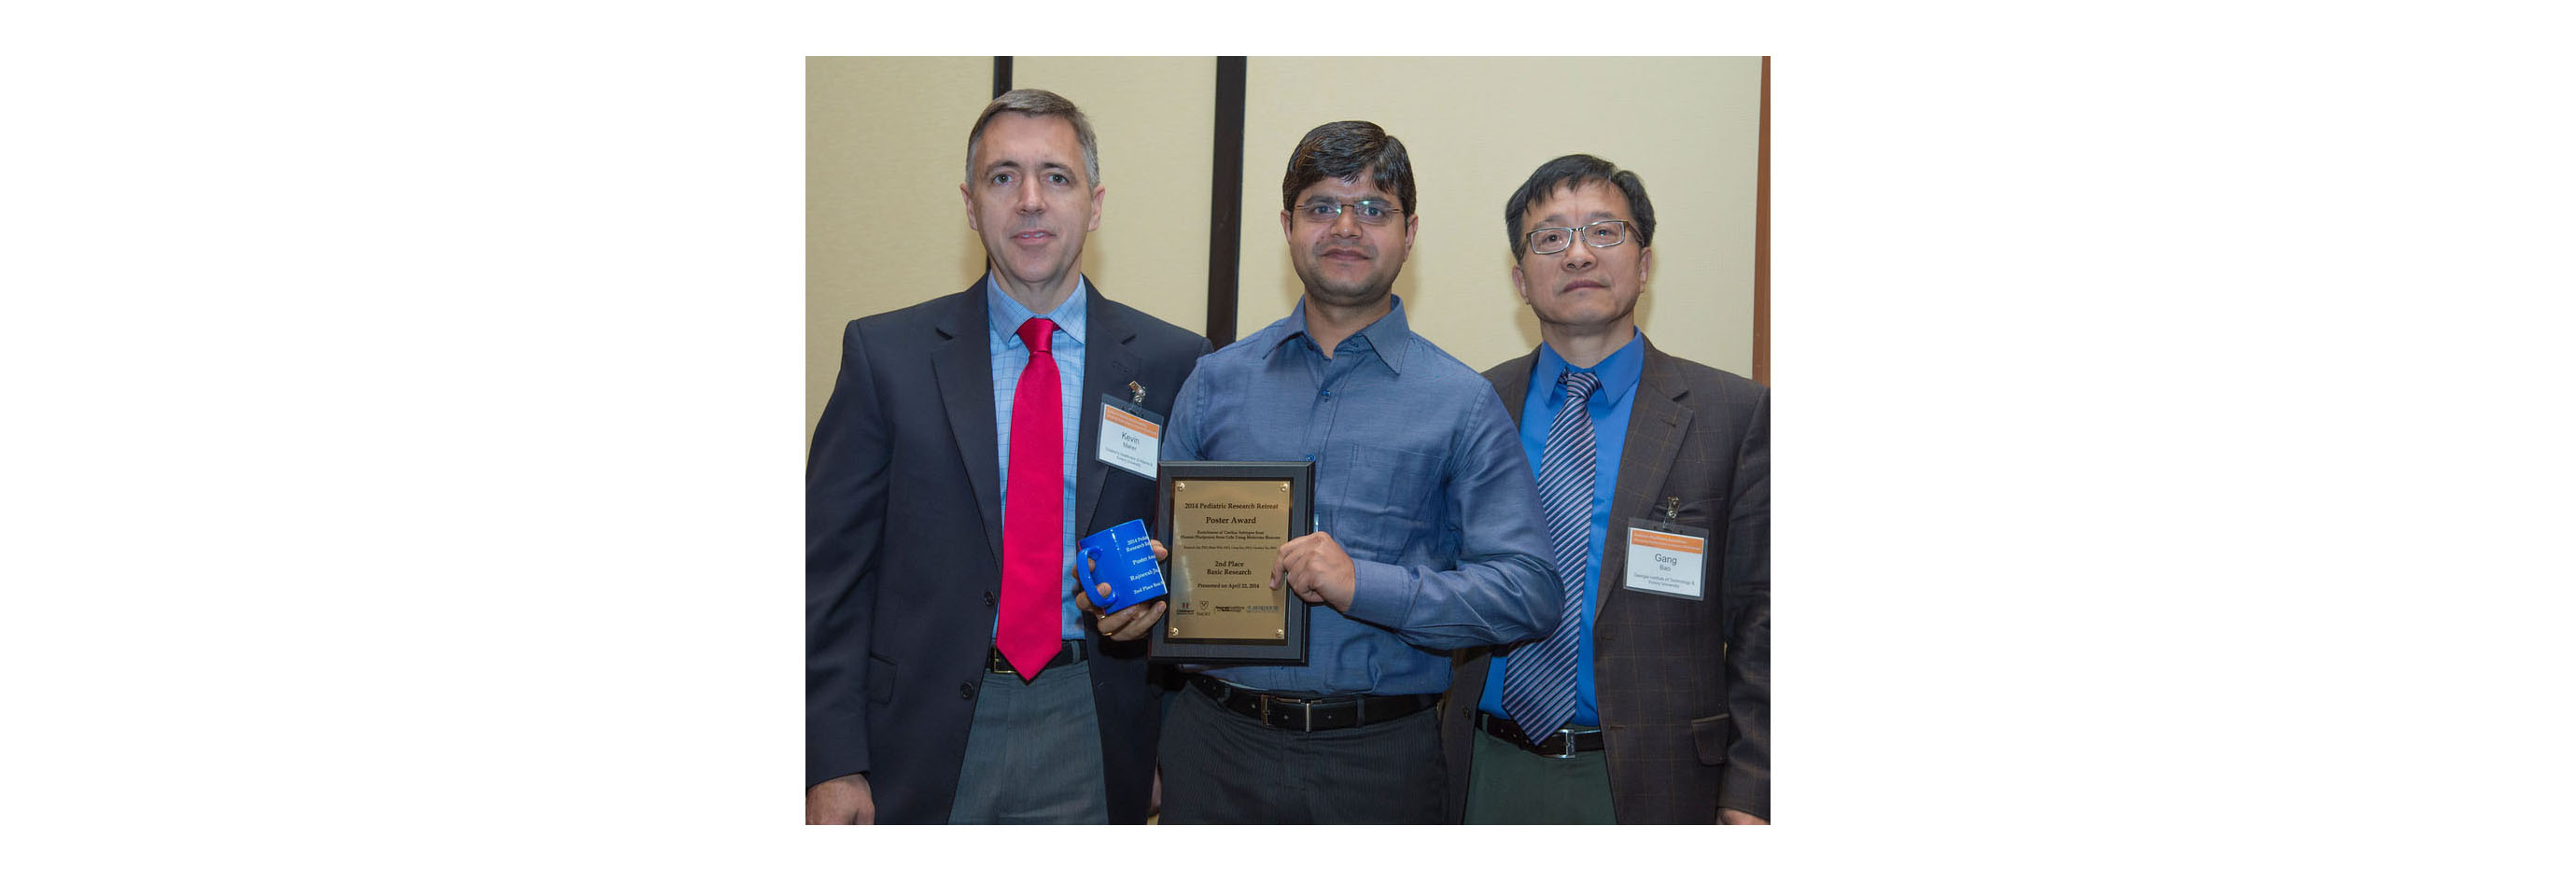 Dr. Rajneesh Jha won the 2nd Place Poster Award Carousel Photo